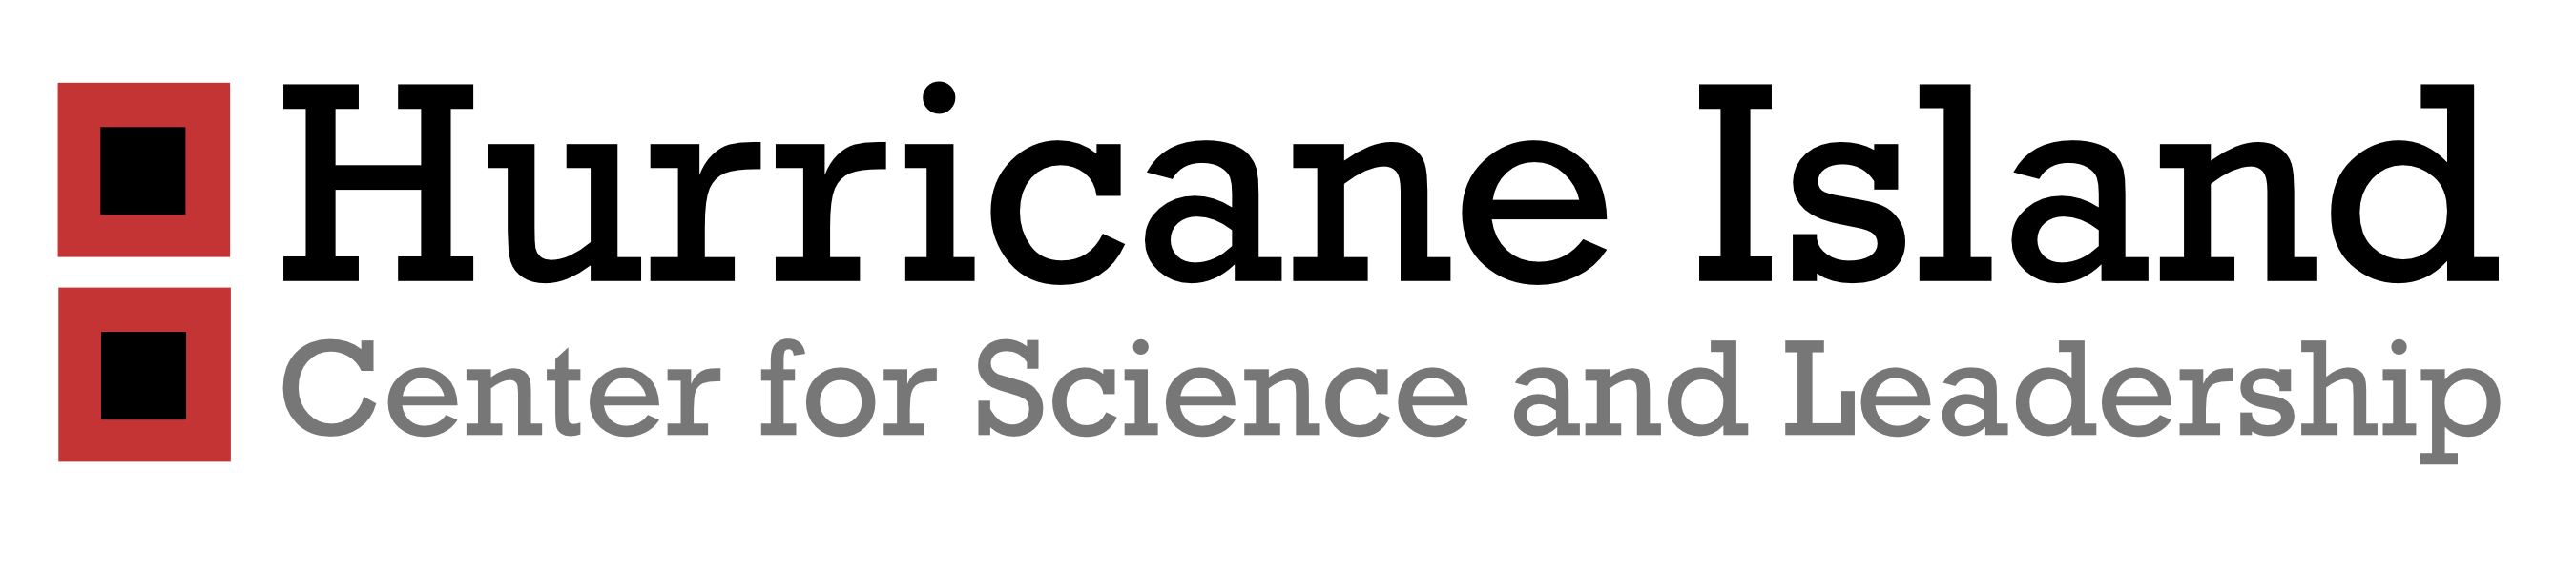 Hurricane Island Center for Science and Leadership